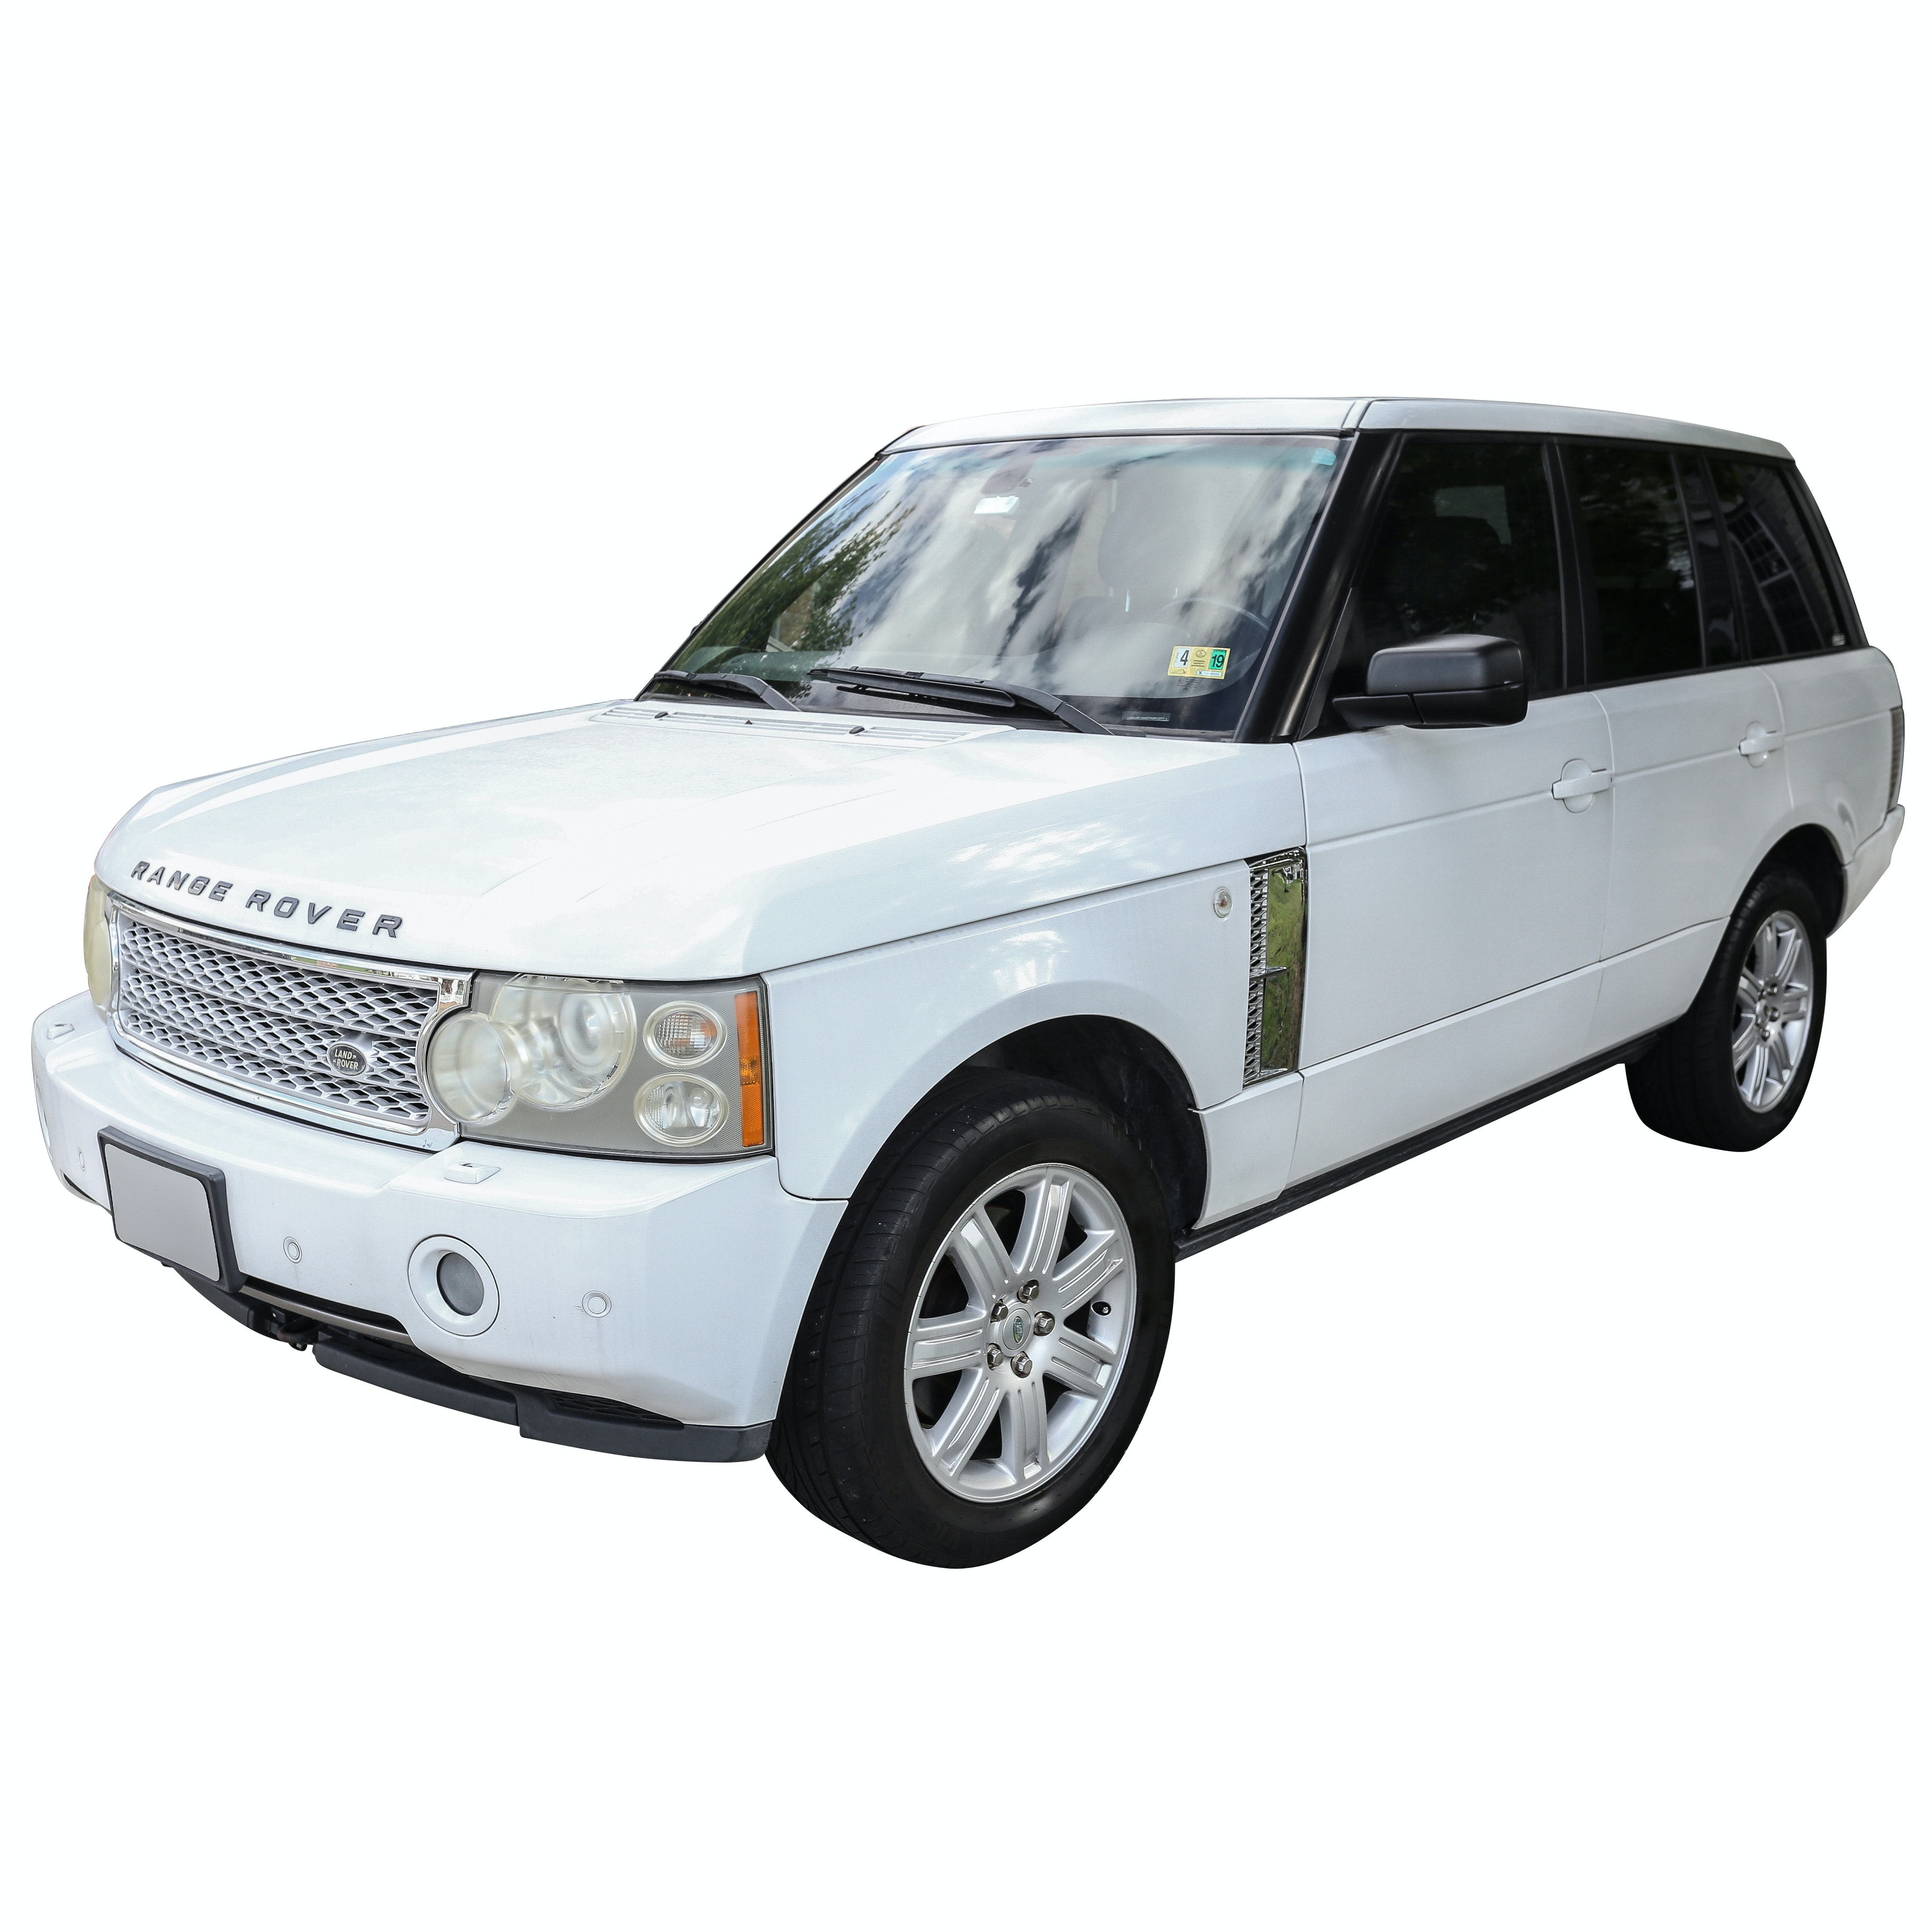 2007 Land Rover Range Rover HSE Sport Utility Vehicle